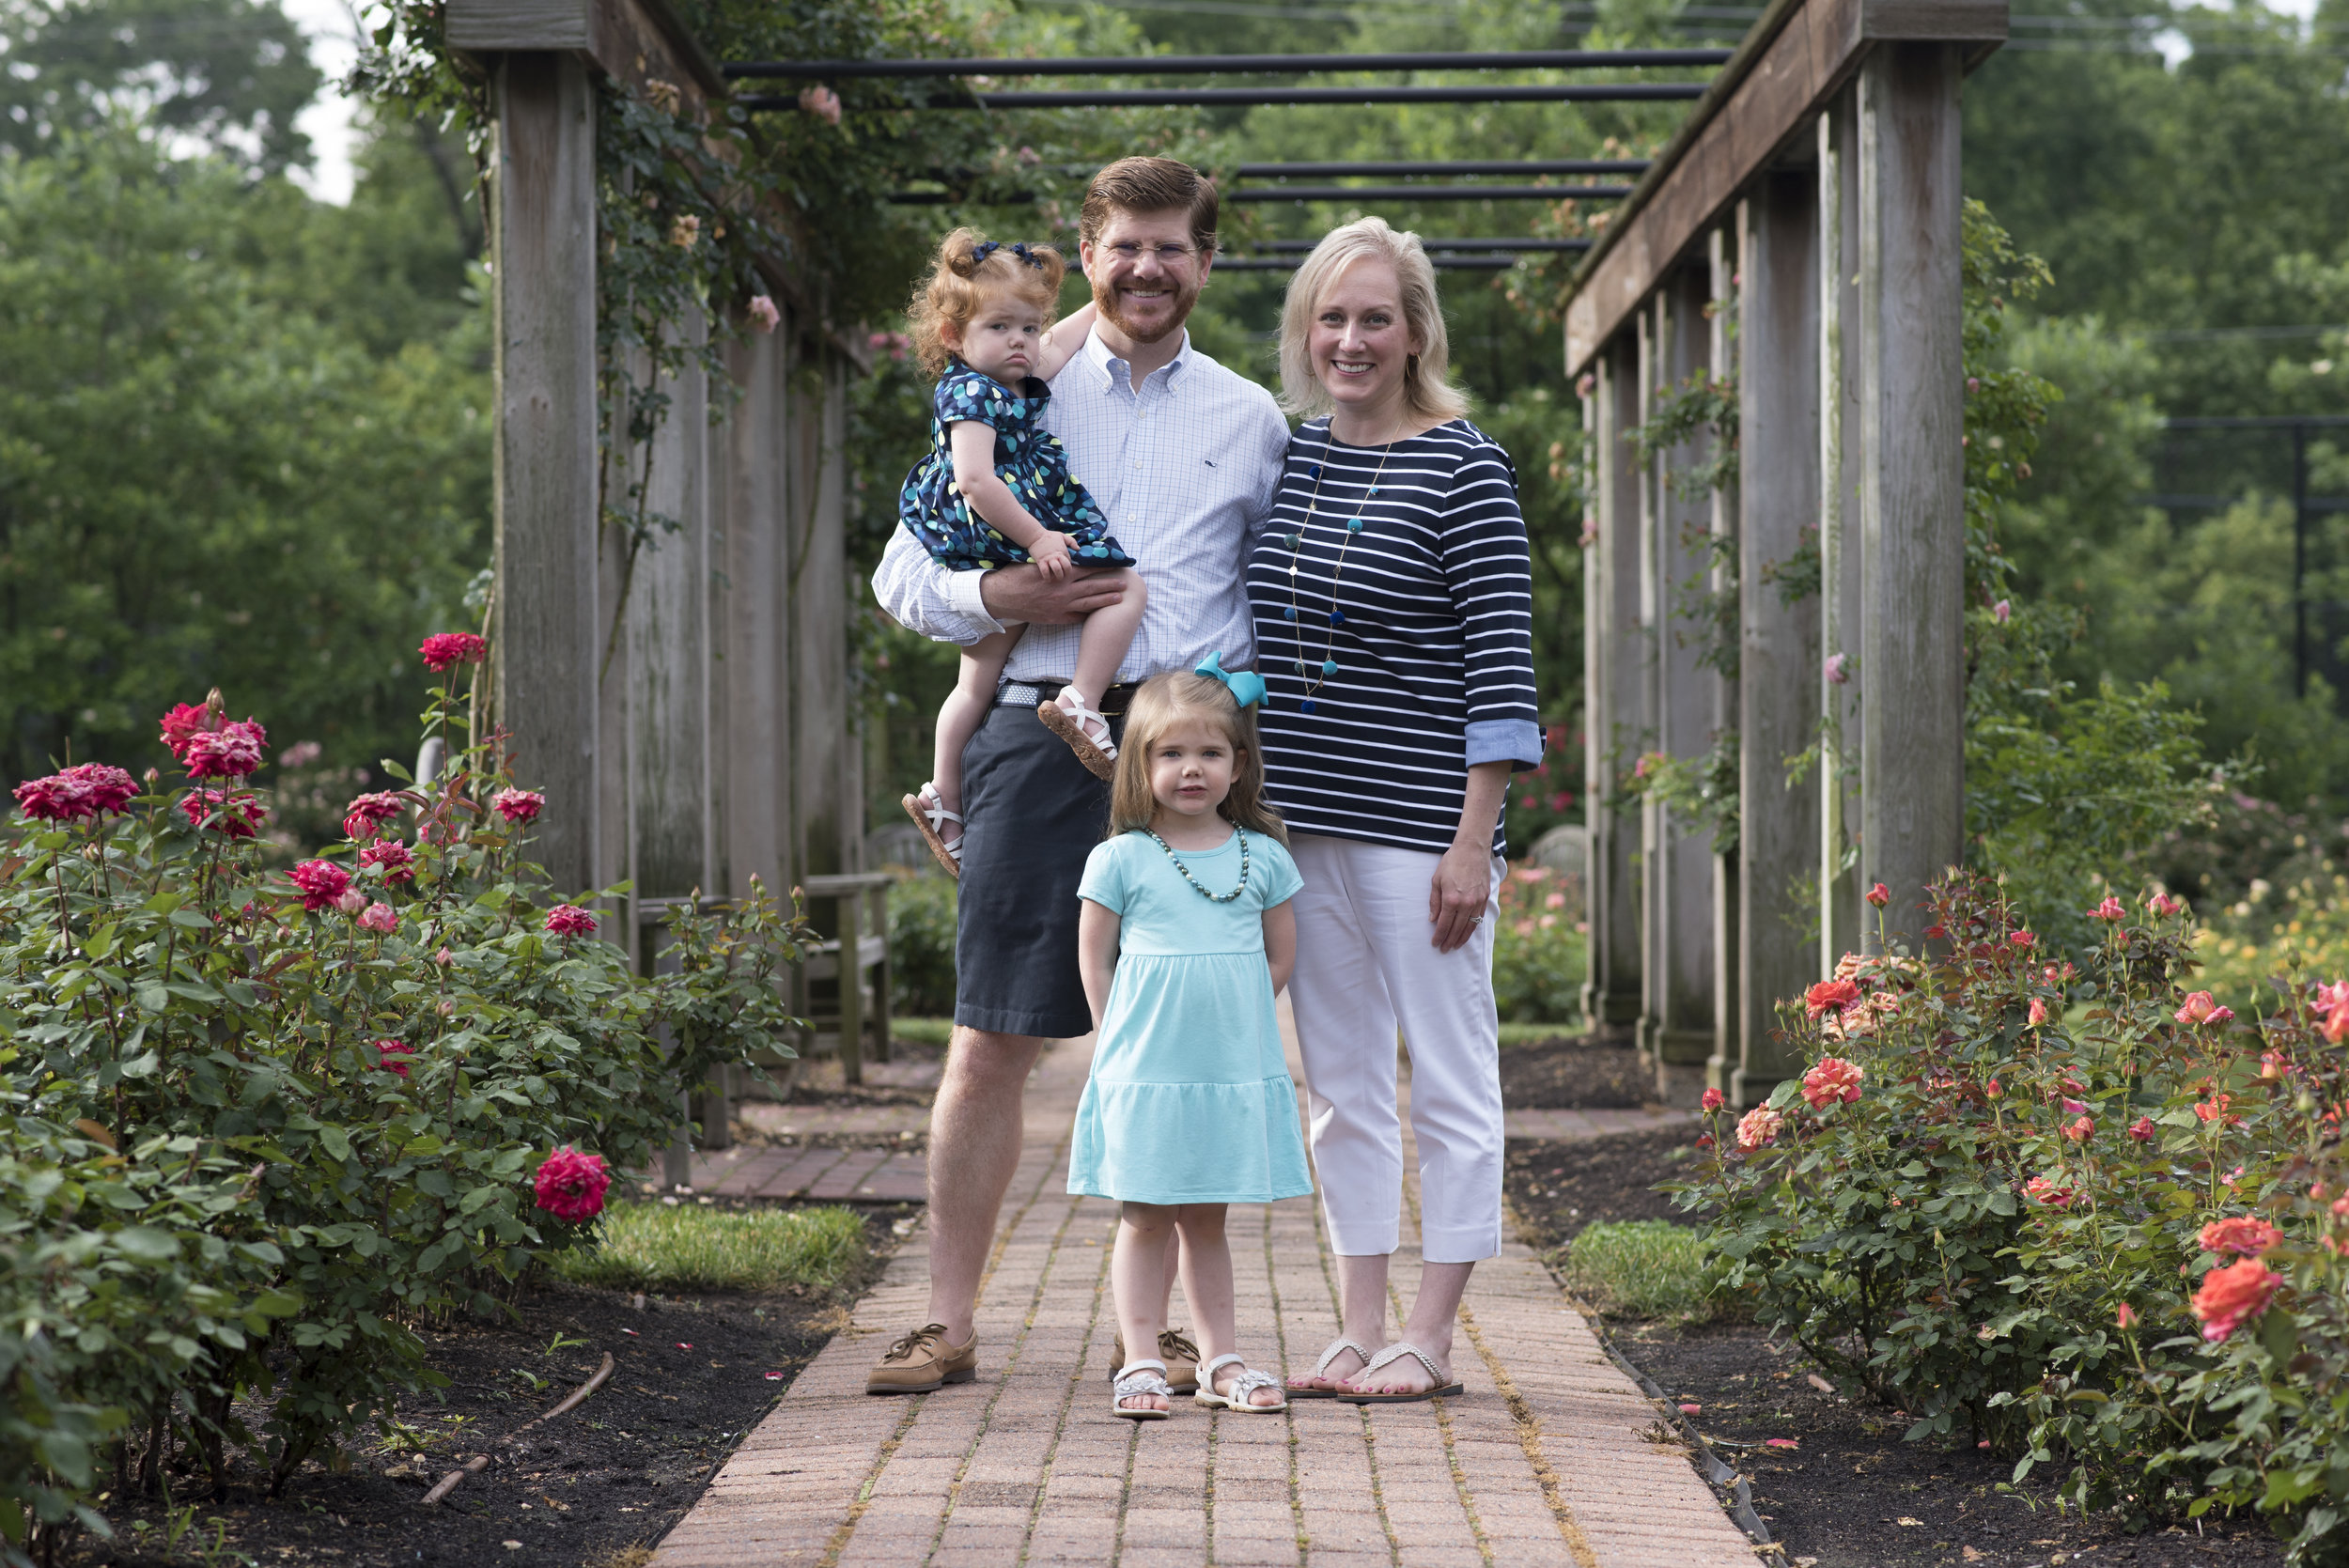 Family of Four - Color scheme of analogous colors in blues and greens stand out beautifully against pink and red roses.